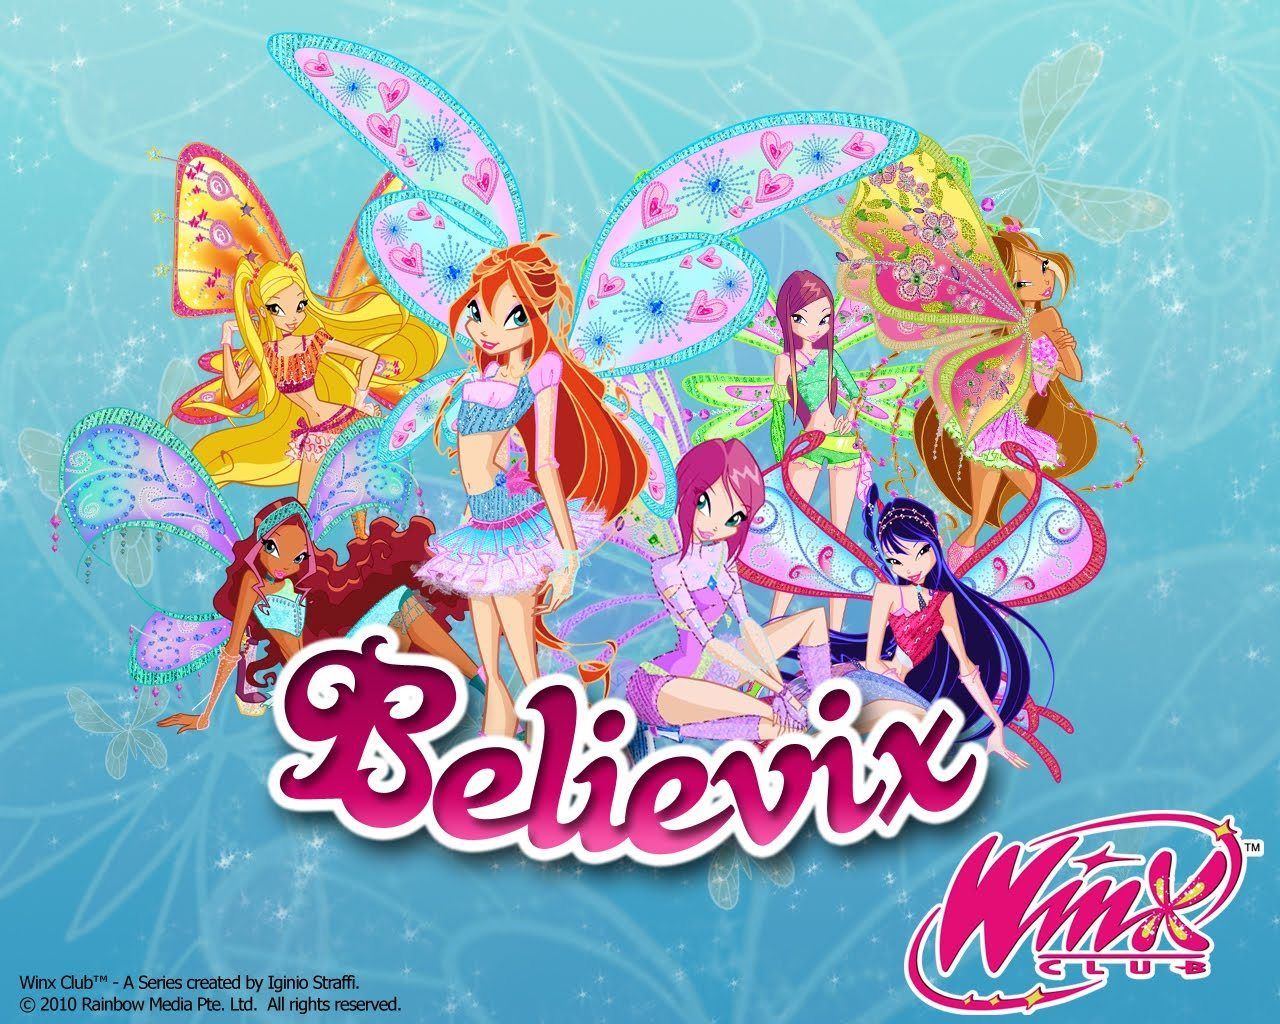 The Winx Club Believix Official Wallpaper